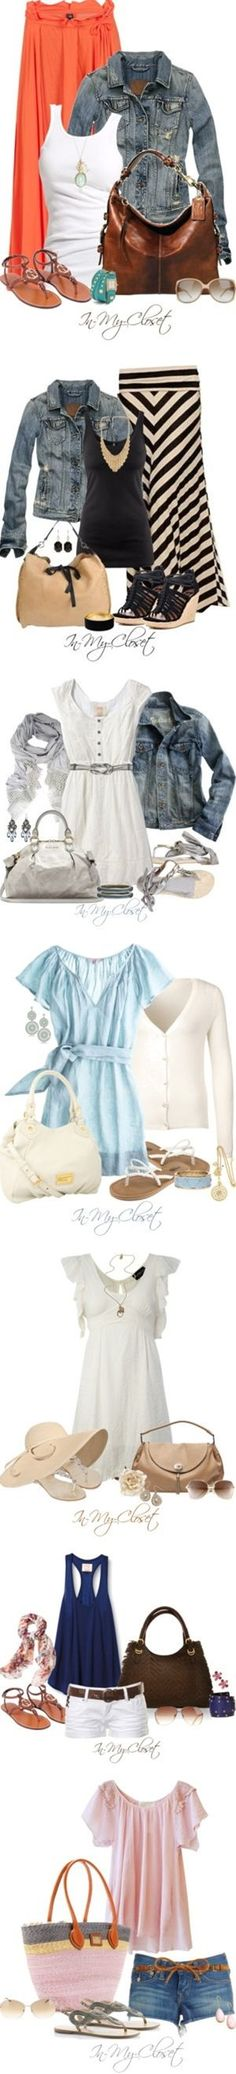 And#34;Hurry Up Summer!And#34; by in-my-closet on Polyvore. LOVE THE MAXI SKIRTS W/DENIM JACKETS (I HAVE JACKETS)! Would need longer shorts! Don't care for all white outfits!